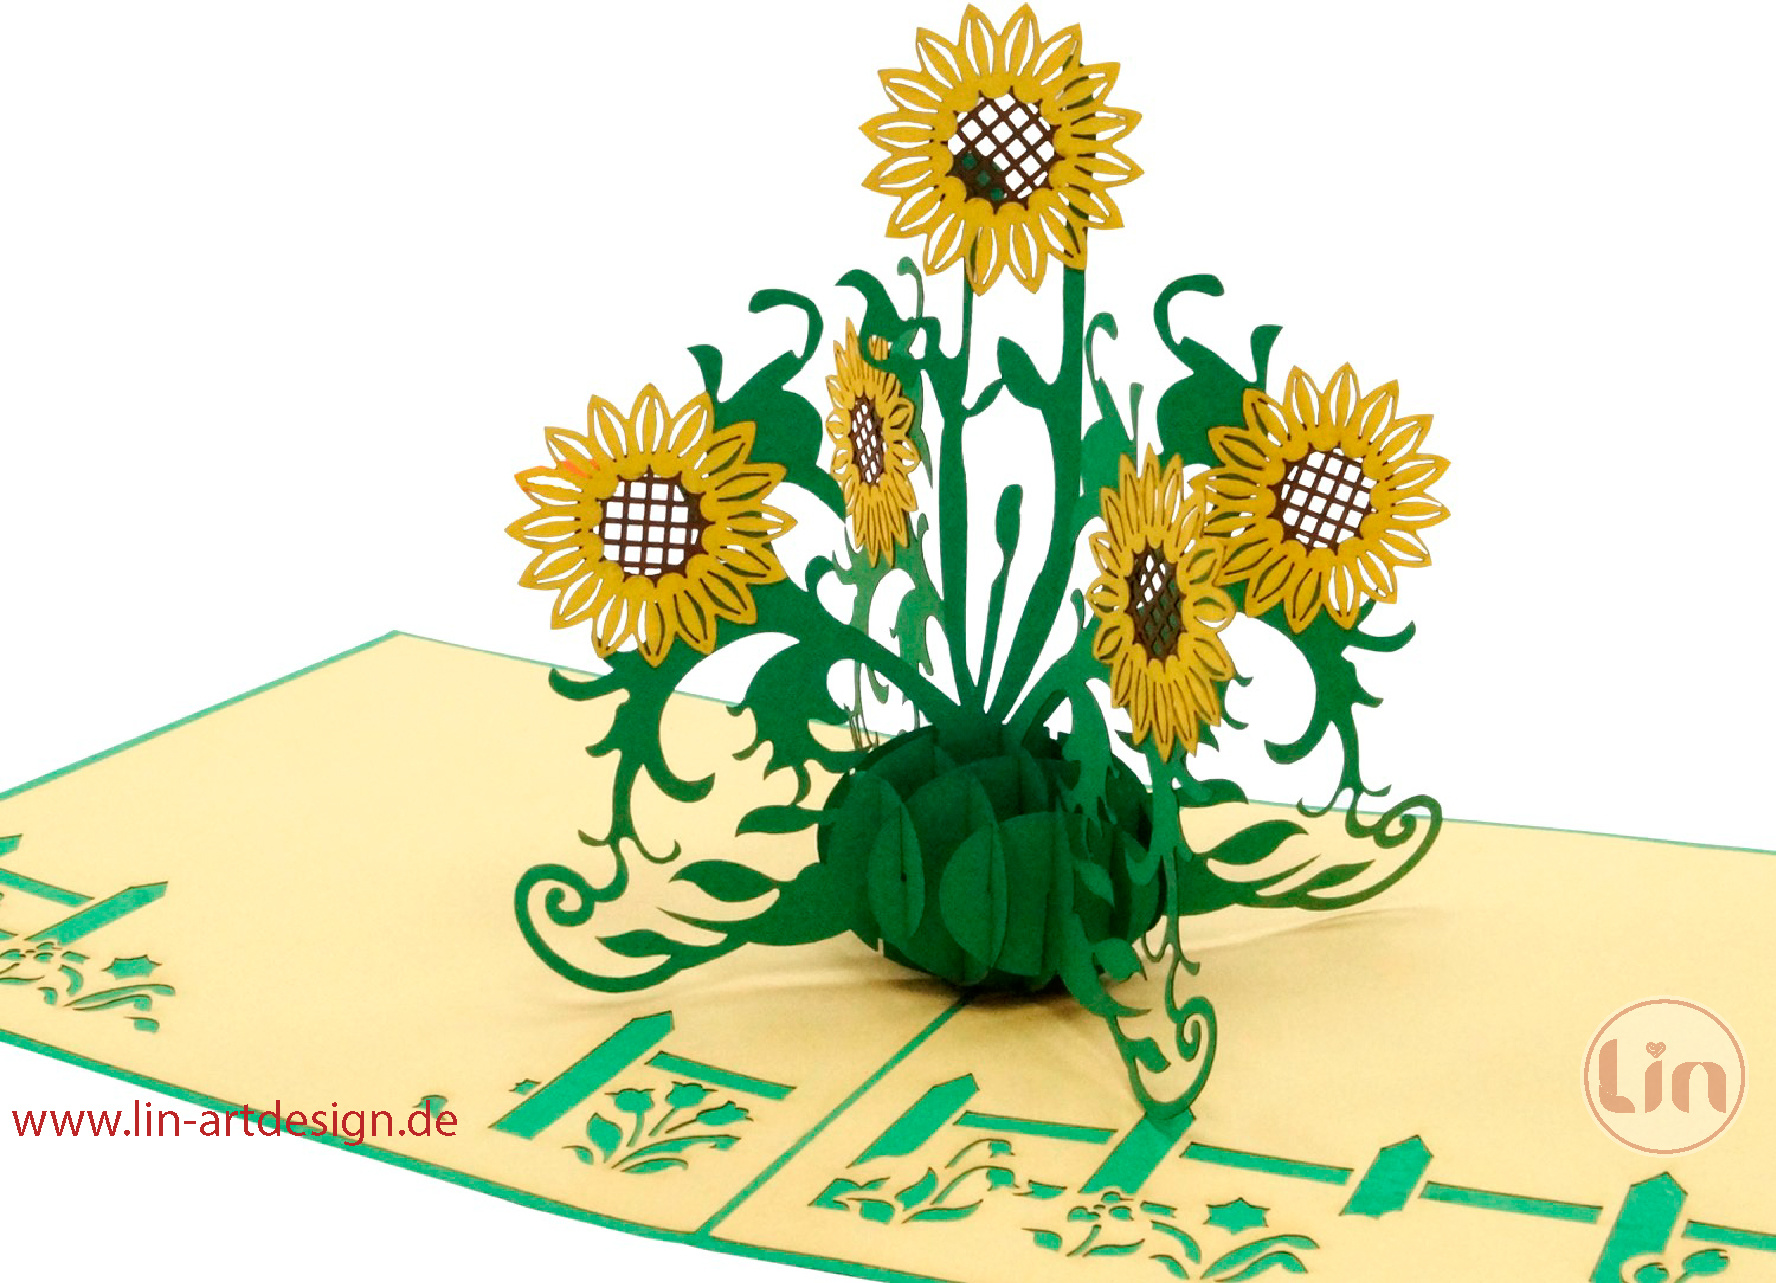 Pop up greeting card with flowers, Birthday greeting card, Mother's day, Nature, Sunflowers, No. 335